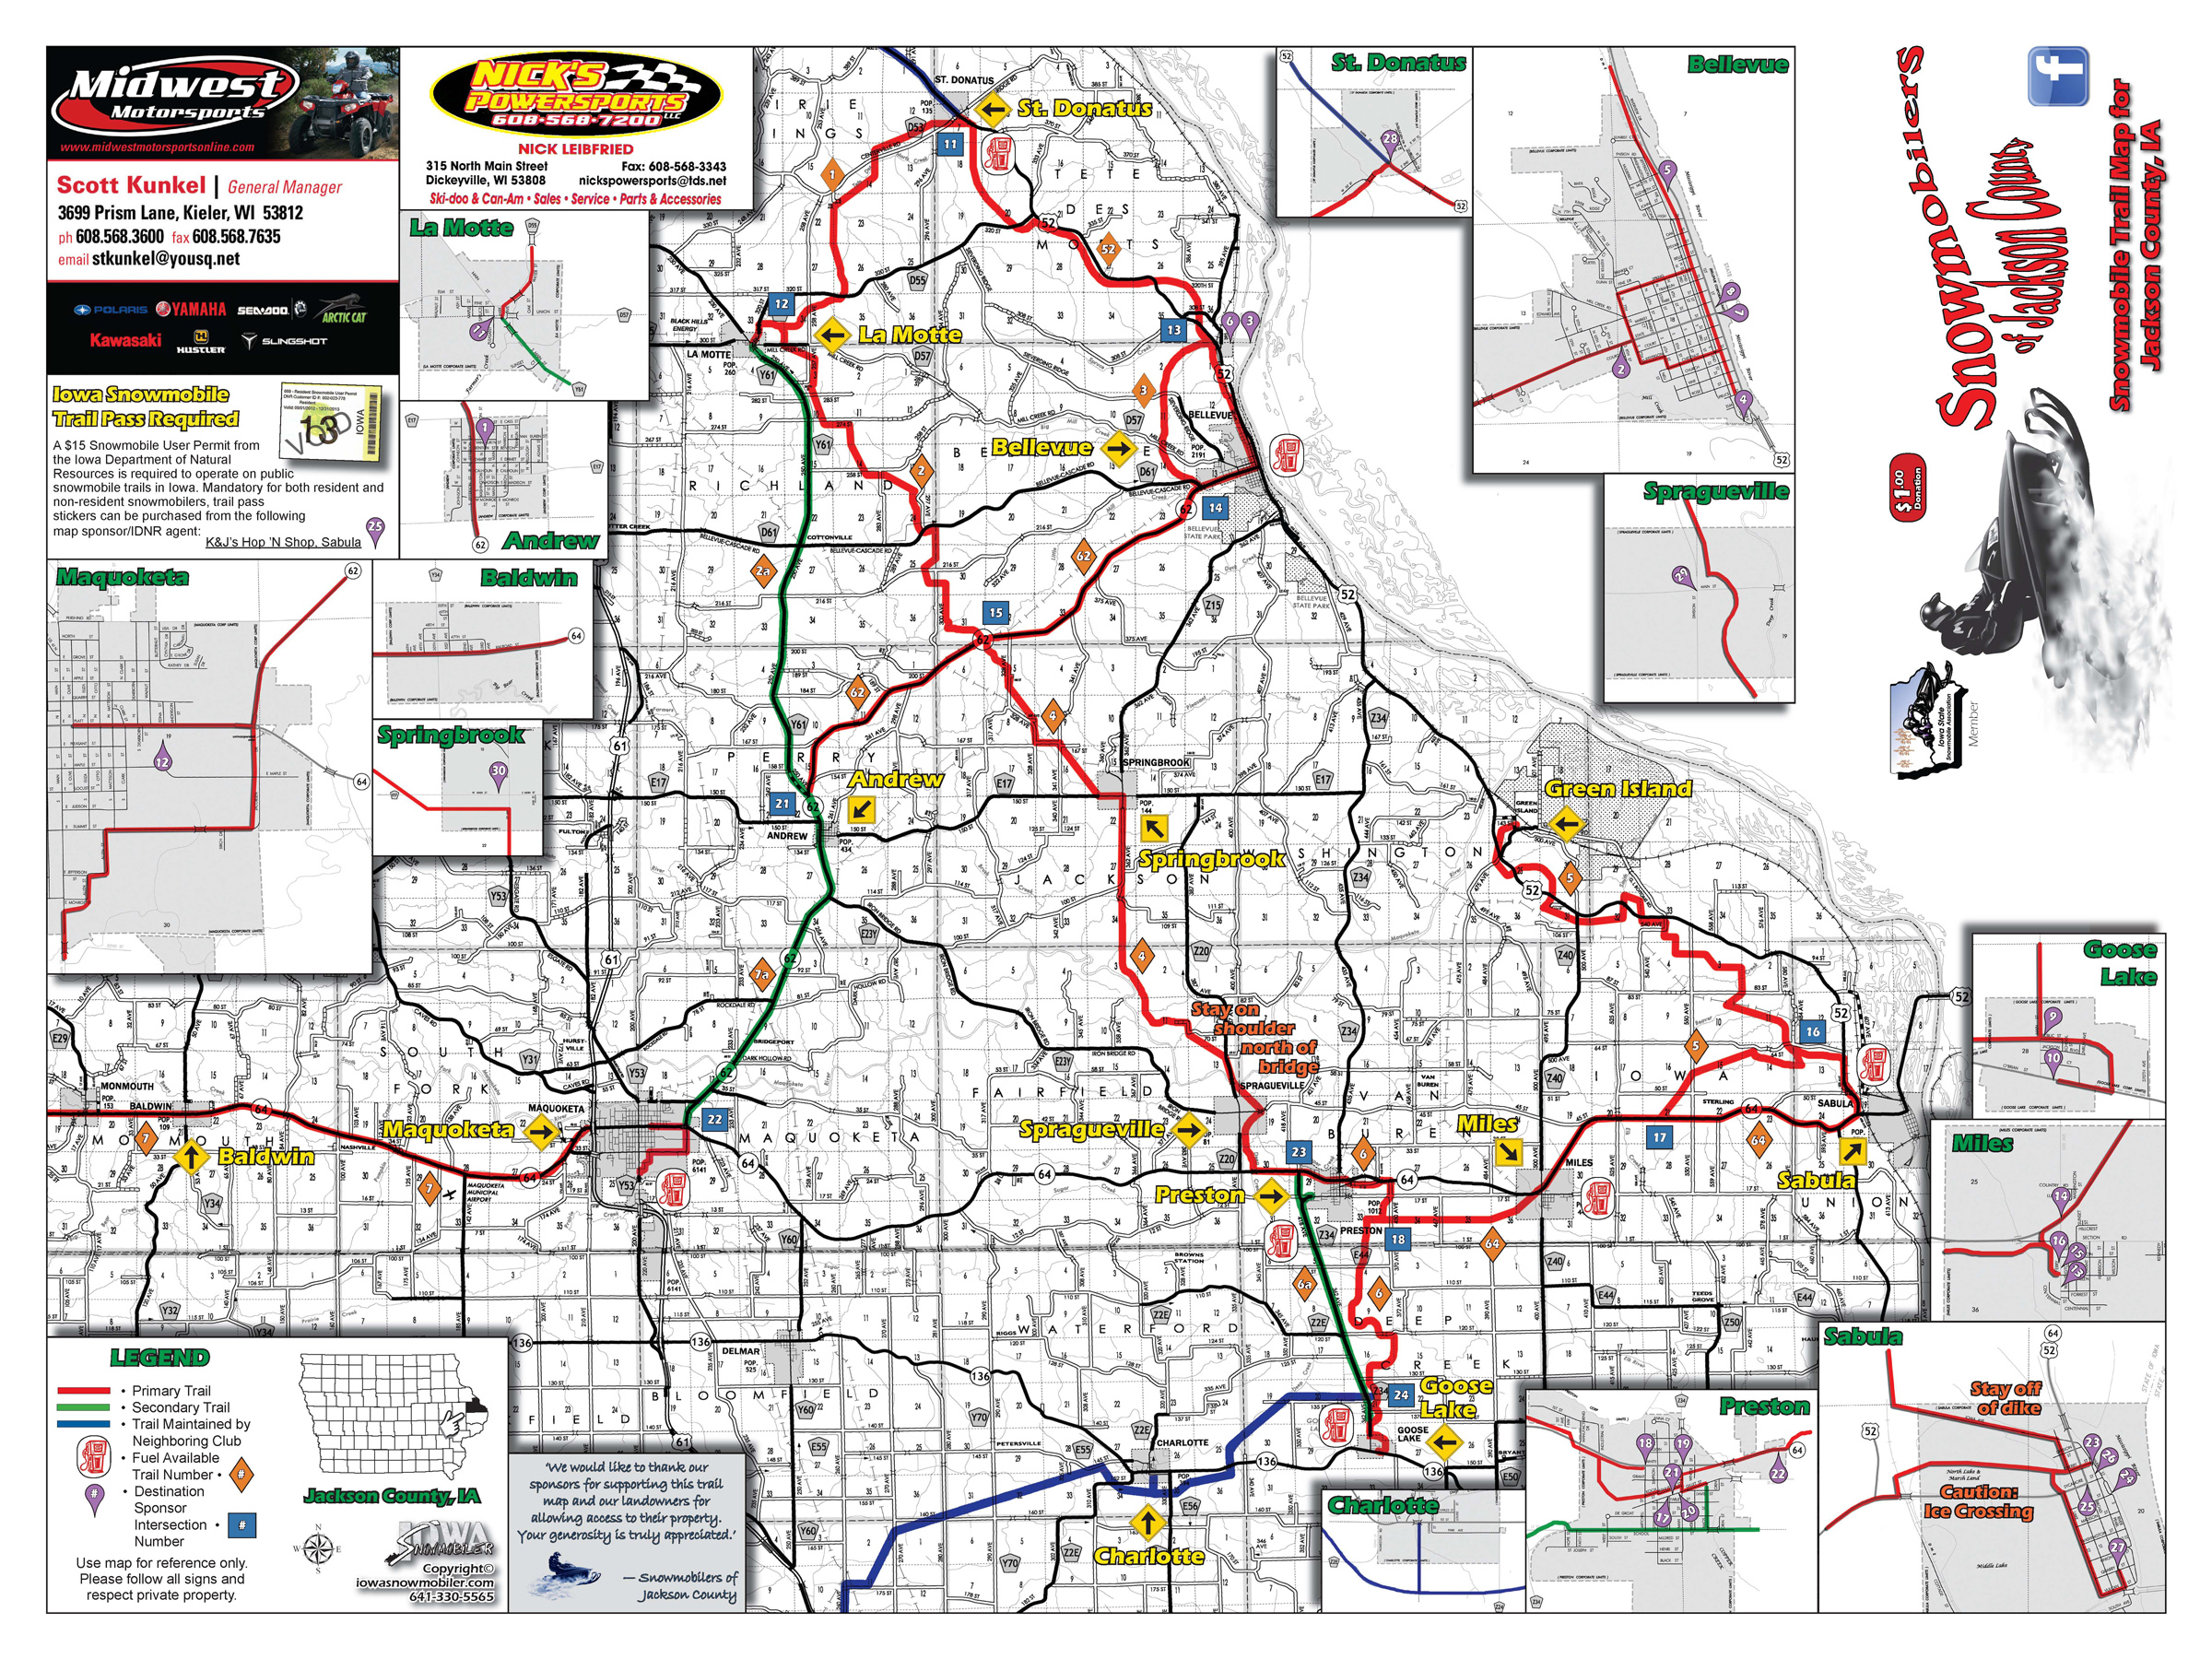 Iowa Snowmobile Trails - Iowa county map